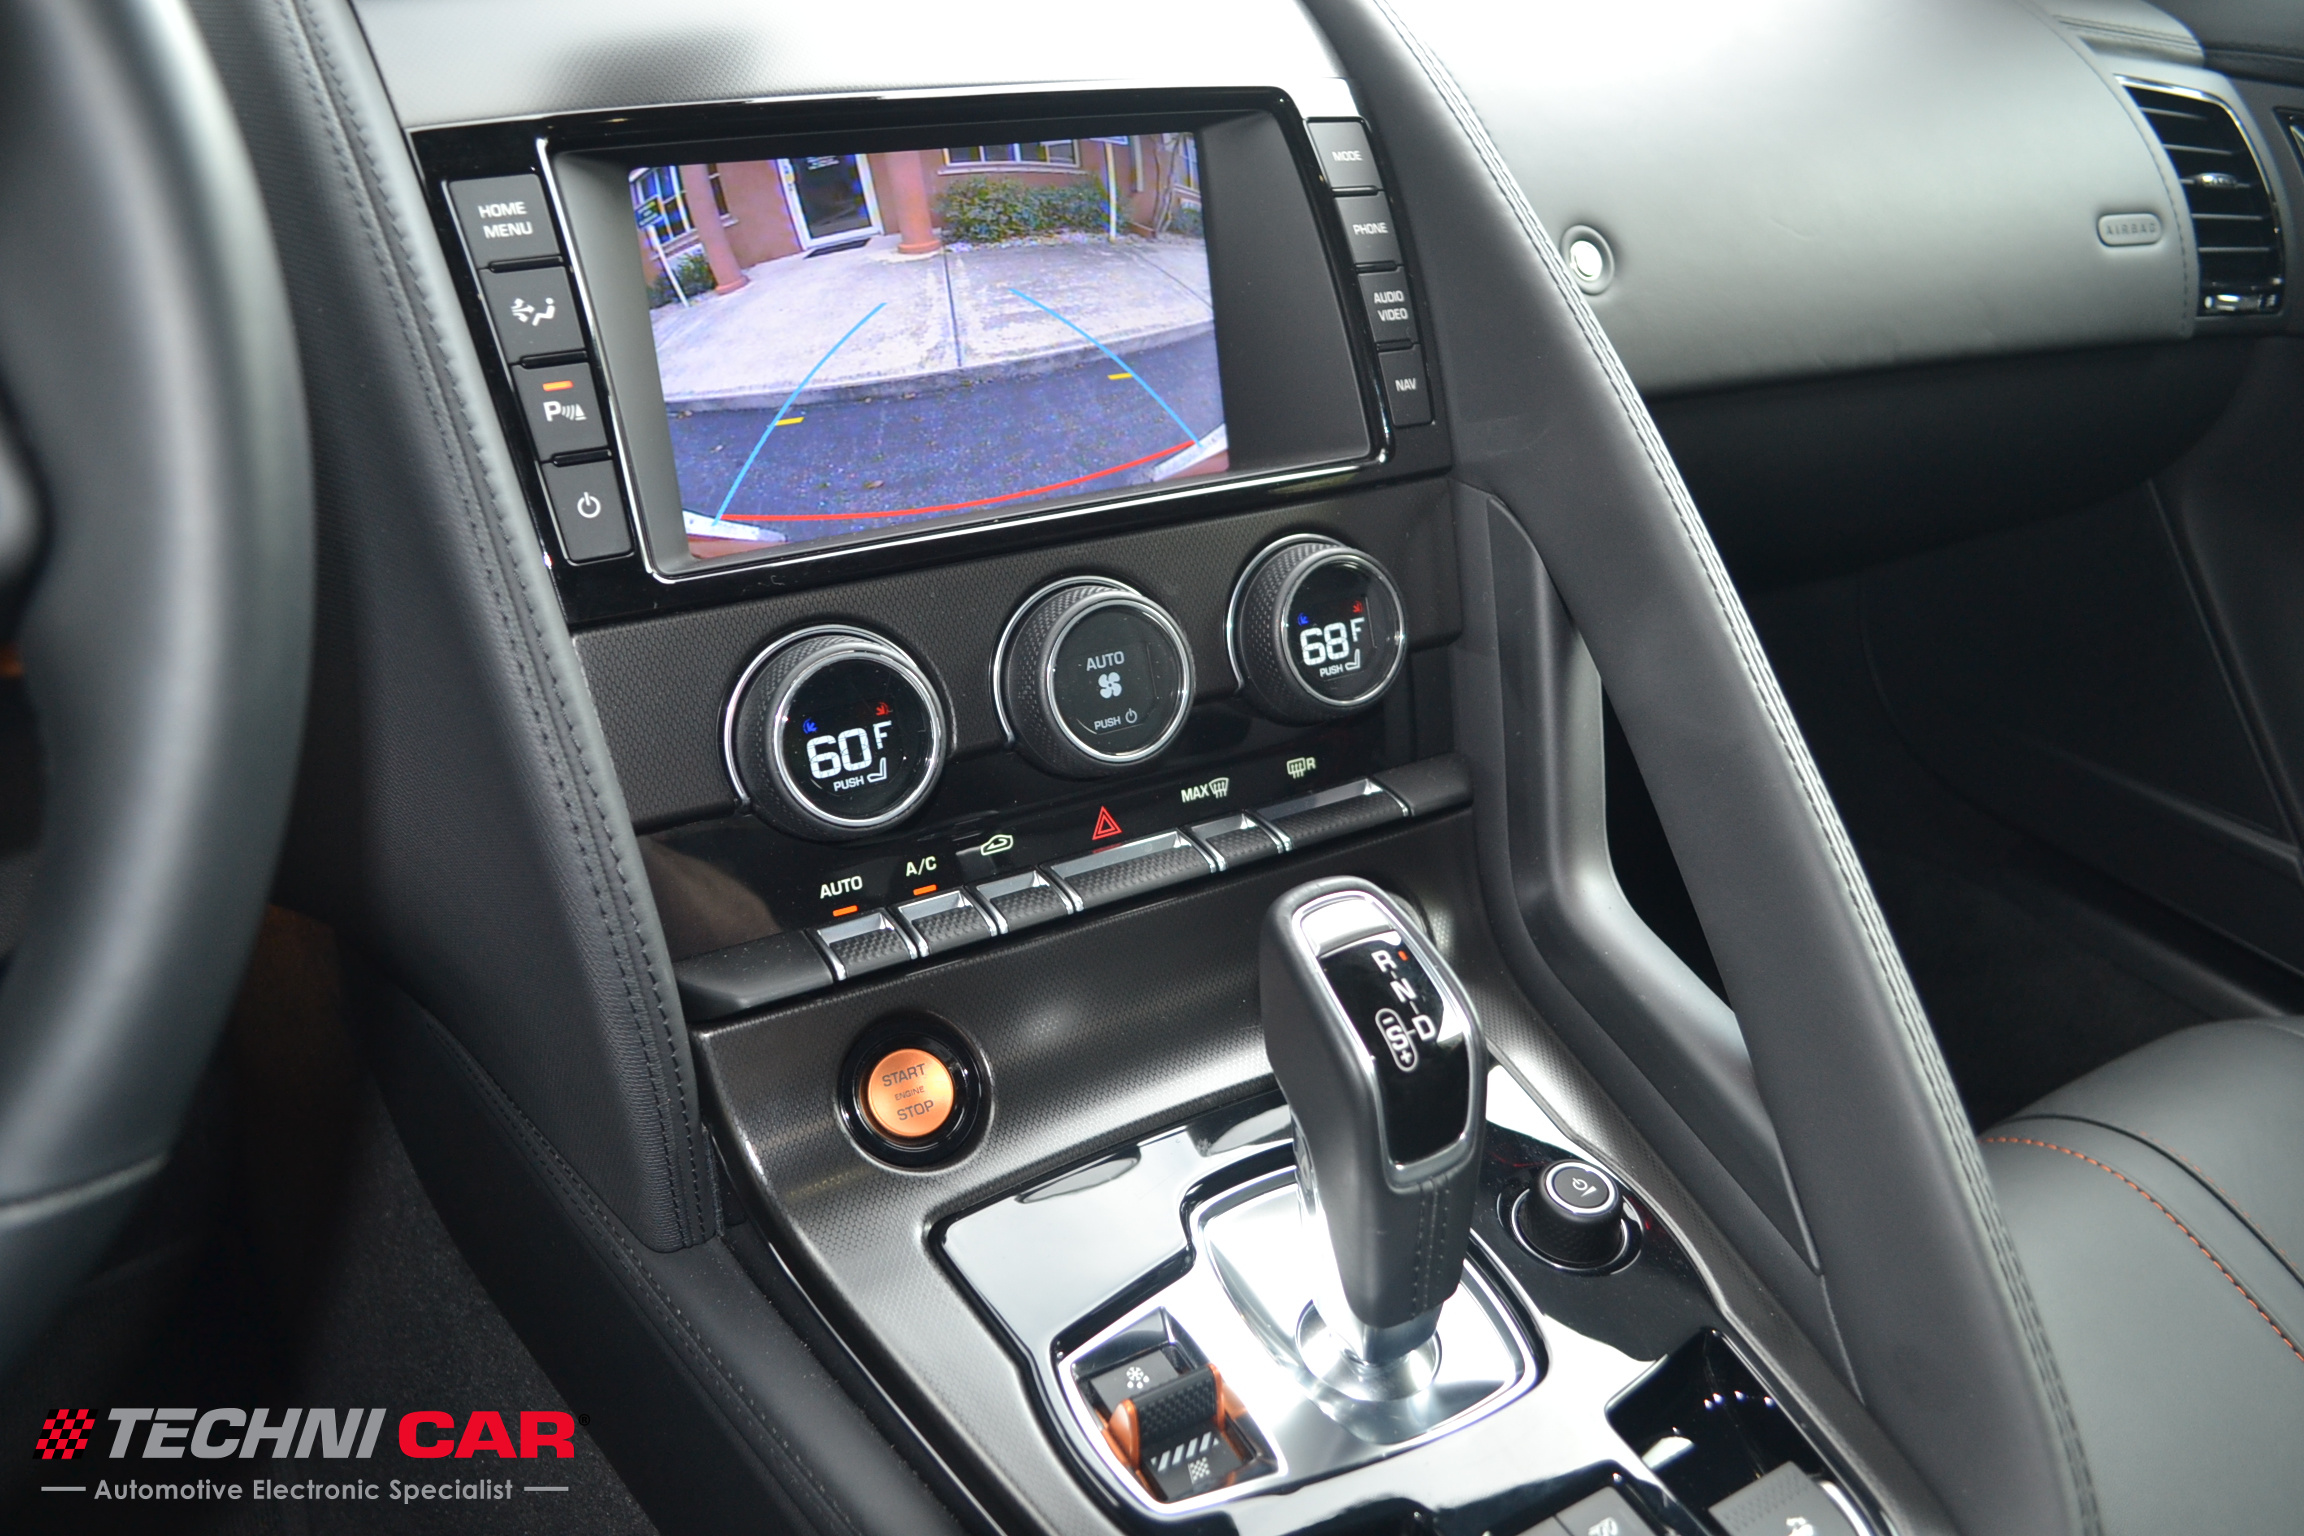 Jaguar F-Type rearview camera